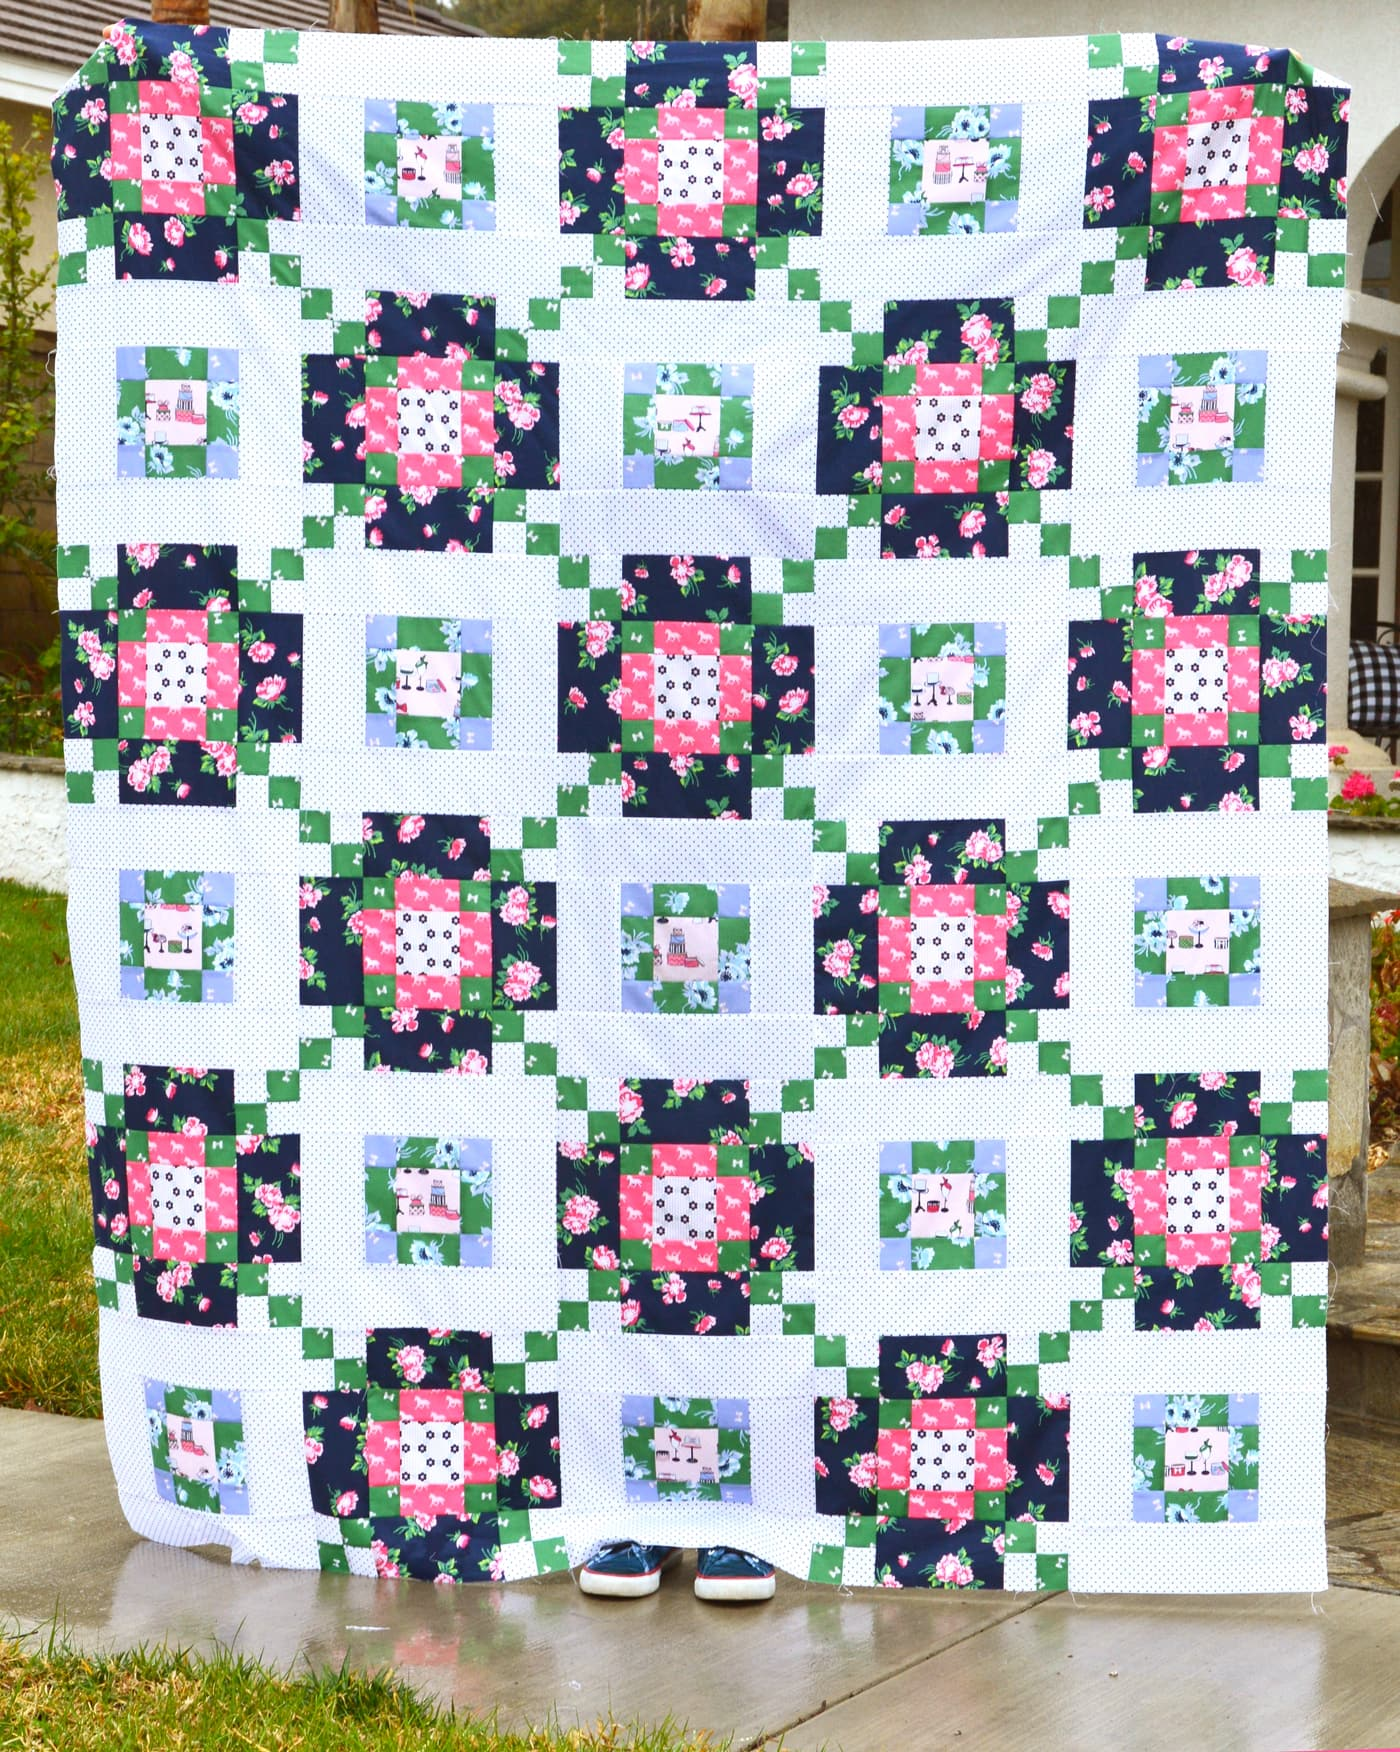 new quilt patterns, Across the Board Quilt pattern by Jedi Craft Girl, uses Derby Day Fabric by Melissa Mortenson for Riley Blake Designs #quilt #quilts #quiltpatterns #quiltpattern